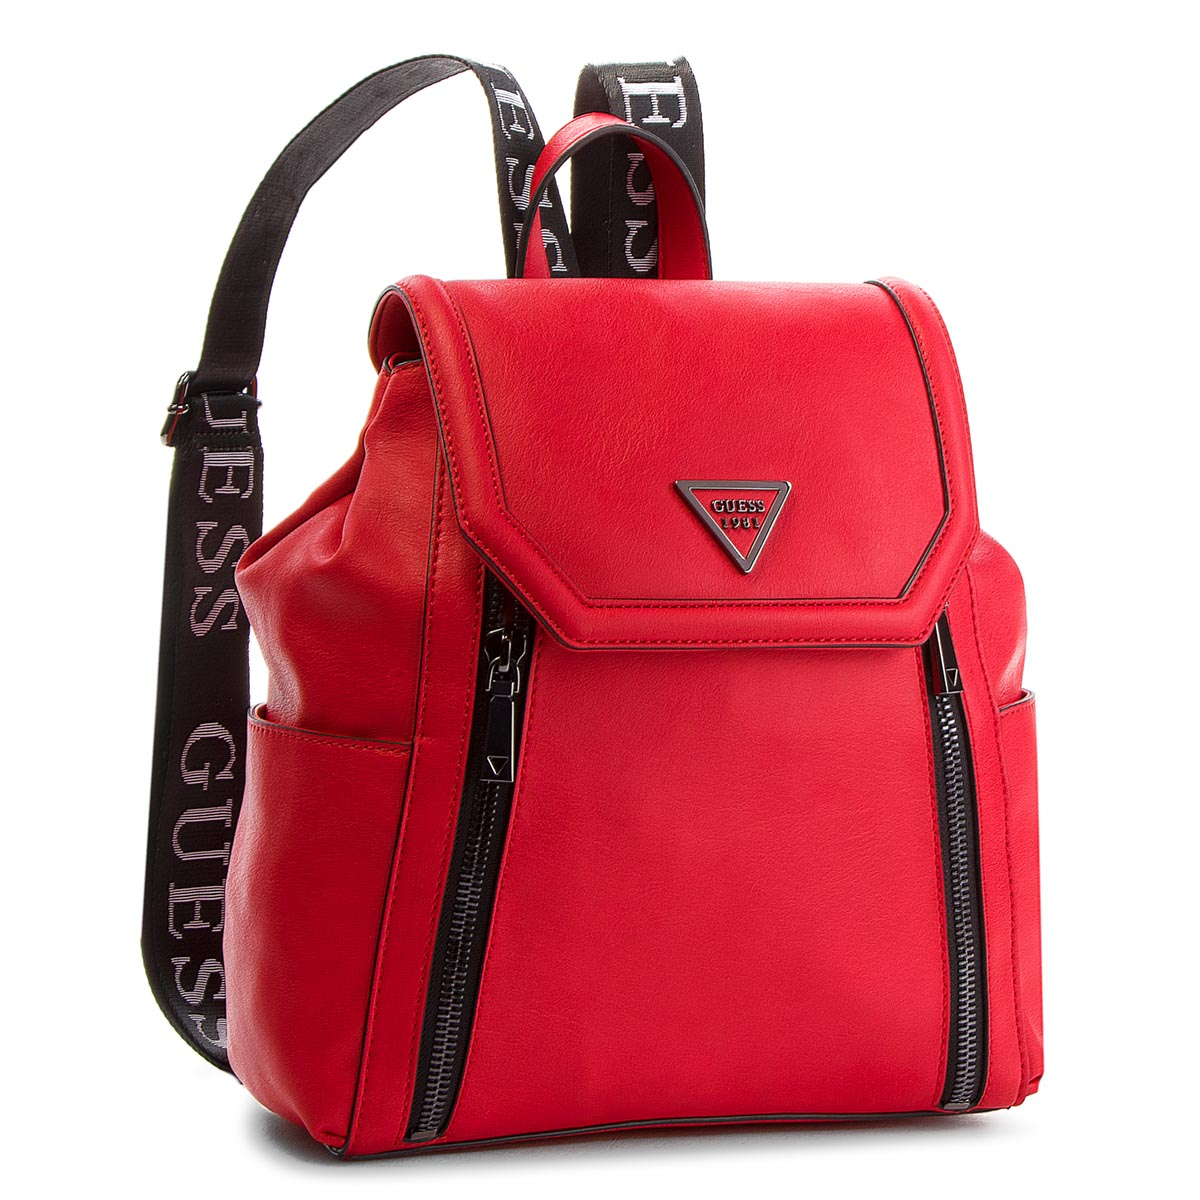 Rucsac GUESS - HWVT71 09320 RED